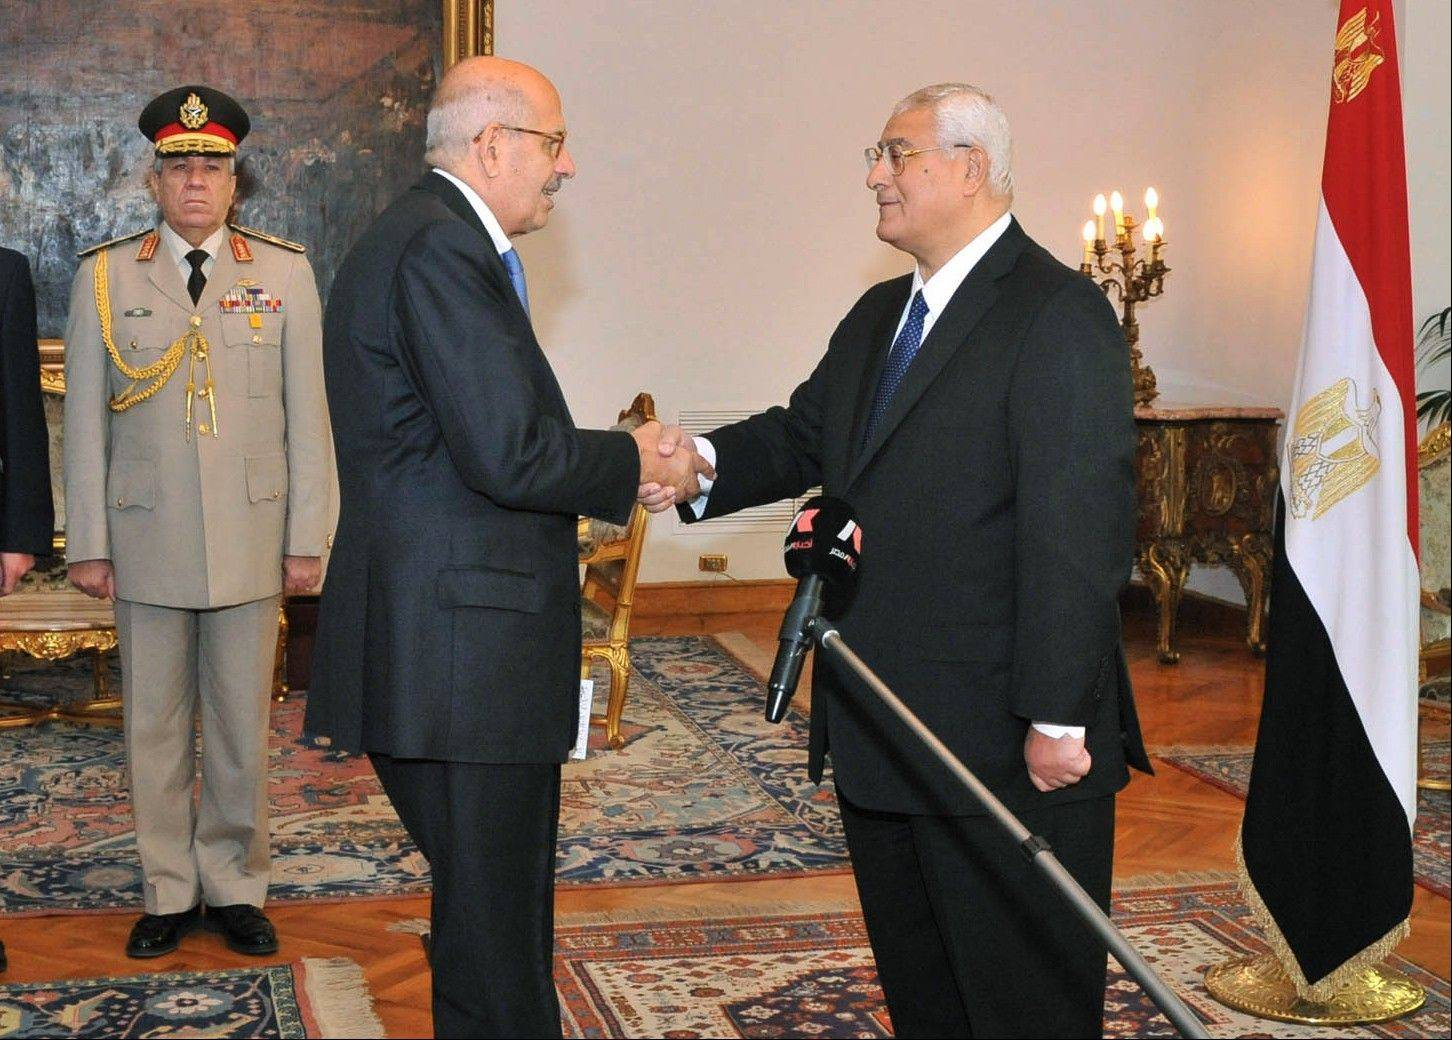 Pro-democracy leader Mohamed ElBaradei, a leader of the National Salvation Front, center left, shakes hands with interim President Adly Mansour after being sworn in as vice president in Cairo on Sunday.